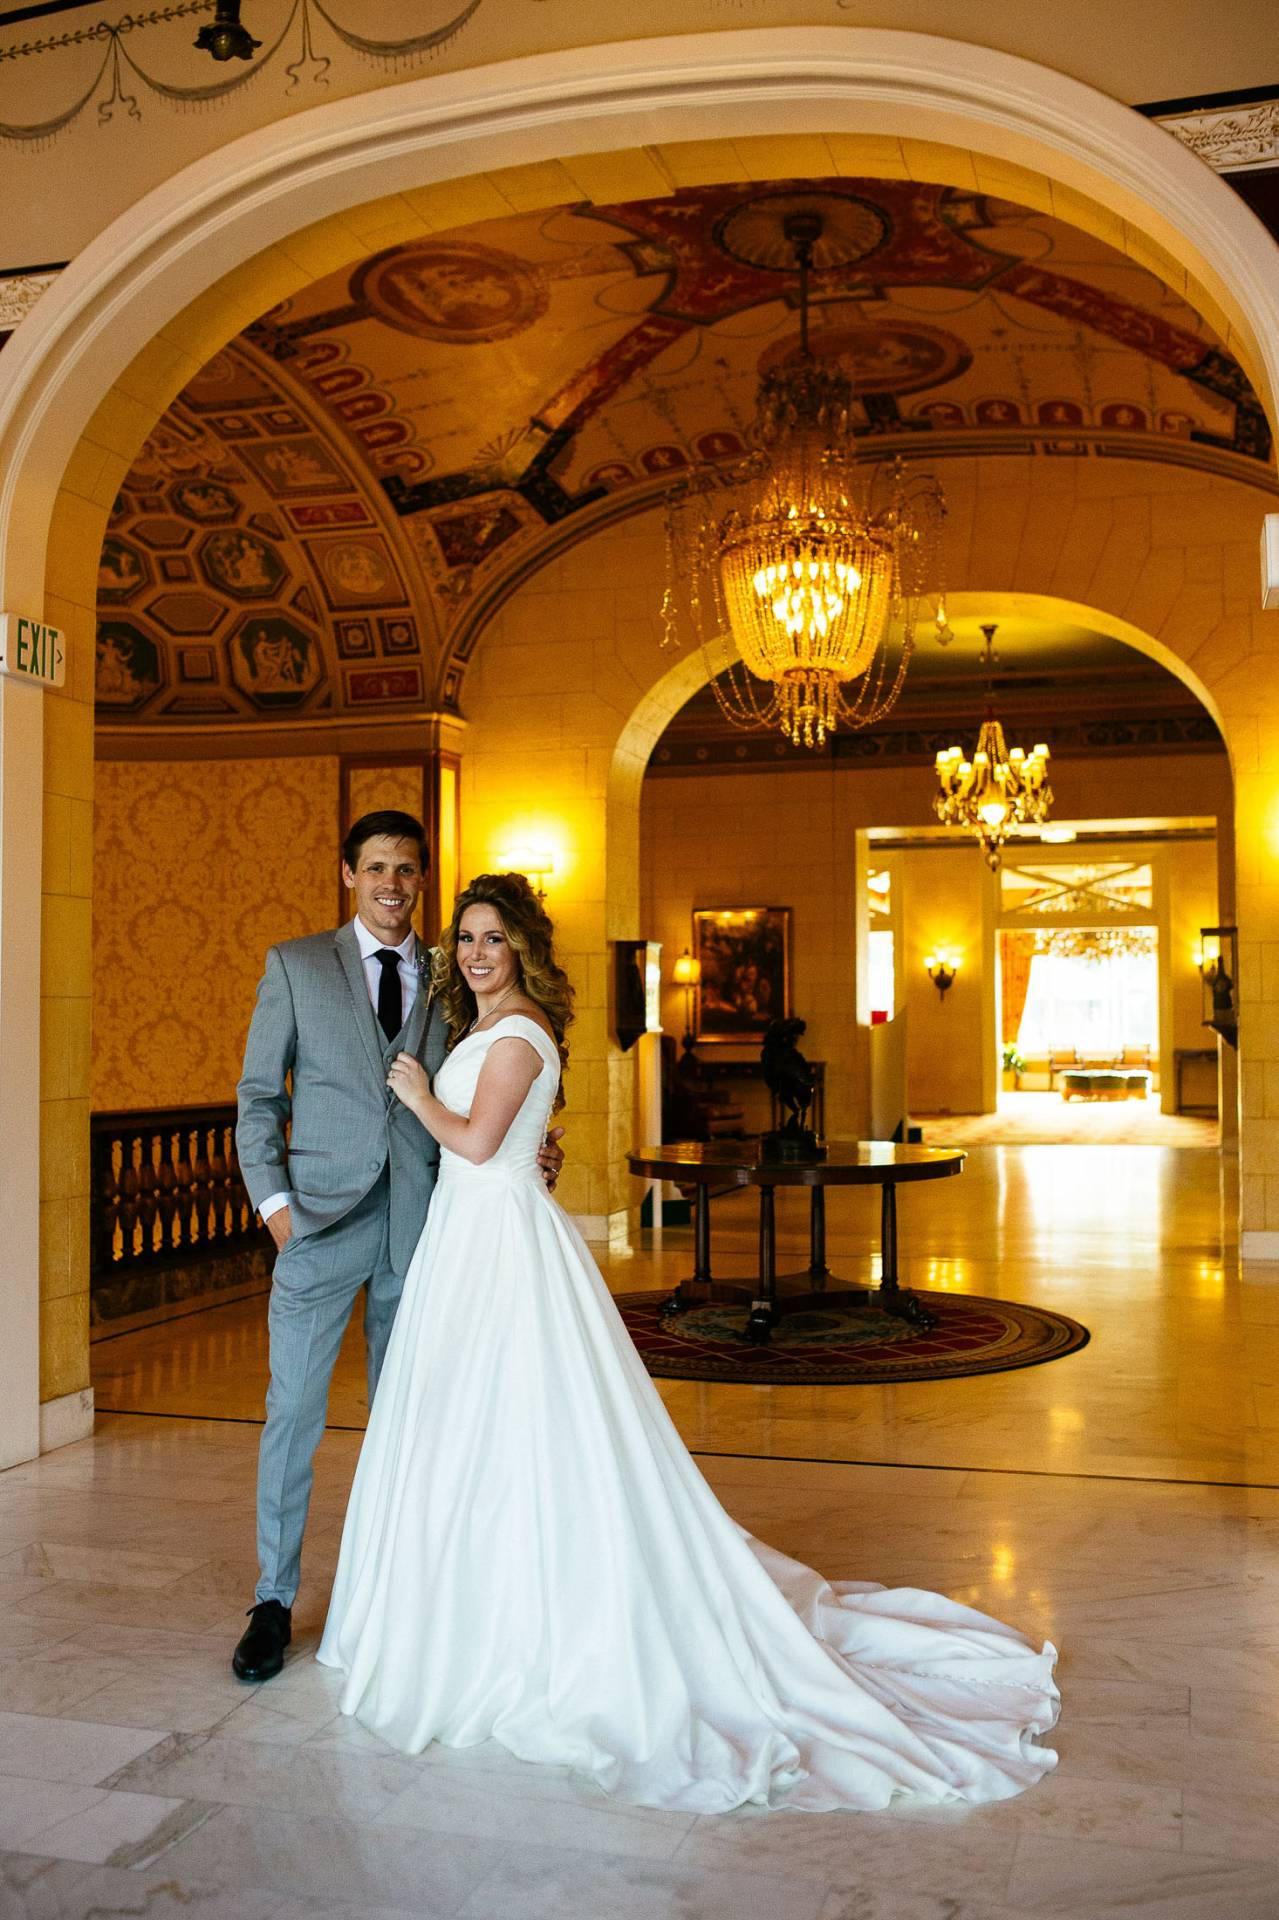 Bride and groom inside the main entrance to The Broadmoor with chandelier in the background.